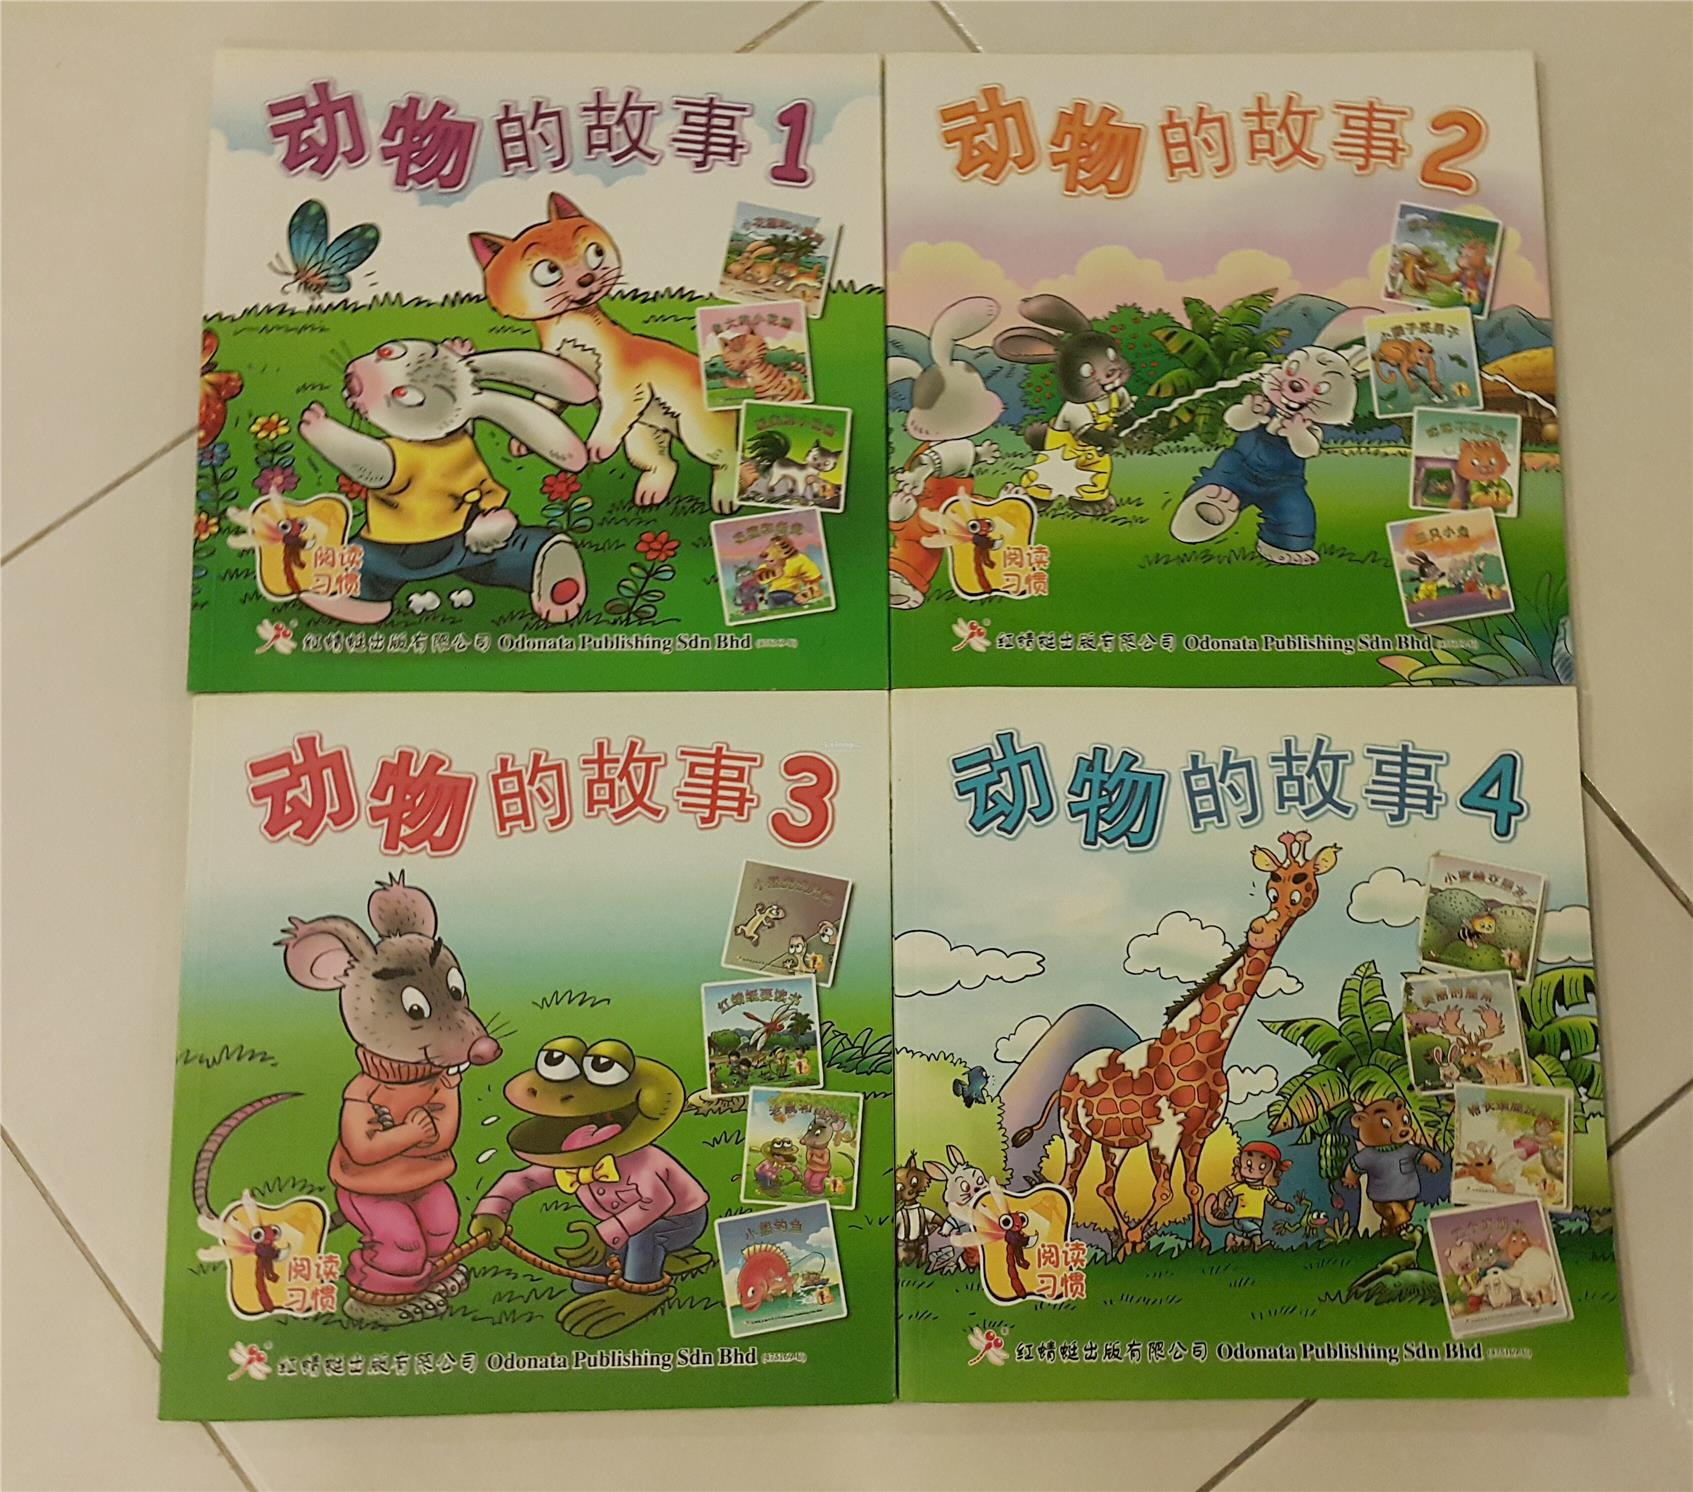 Children odonata children story books - animal